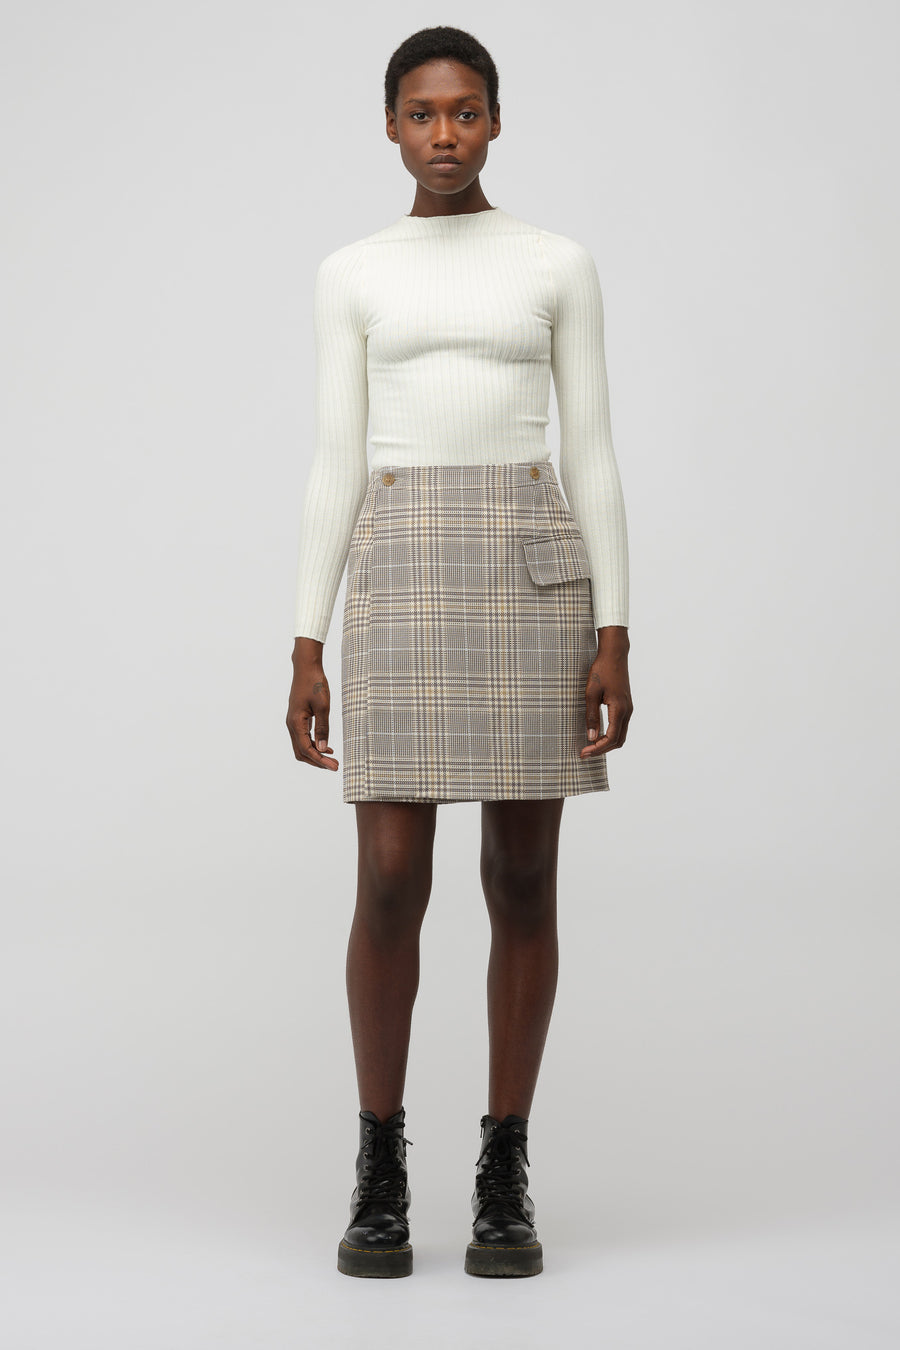 Acne Studios Plaid Mini Skirt in Grey/Beige - Notre